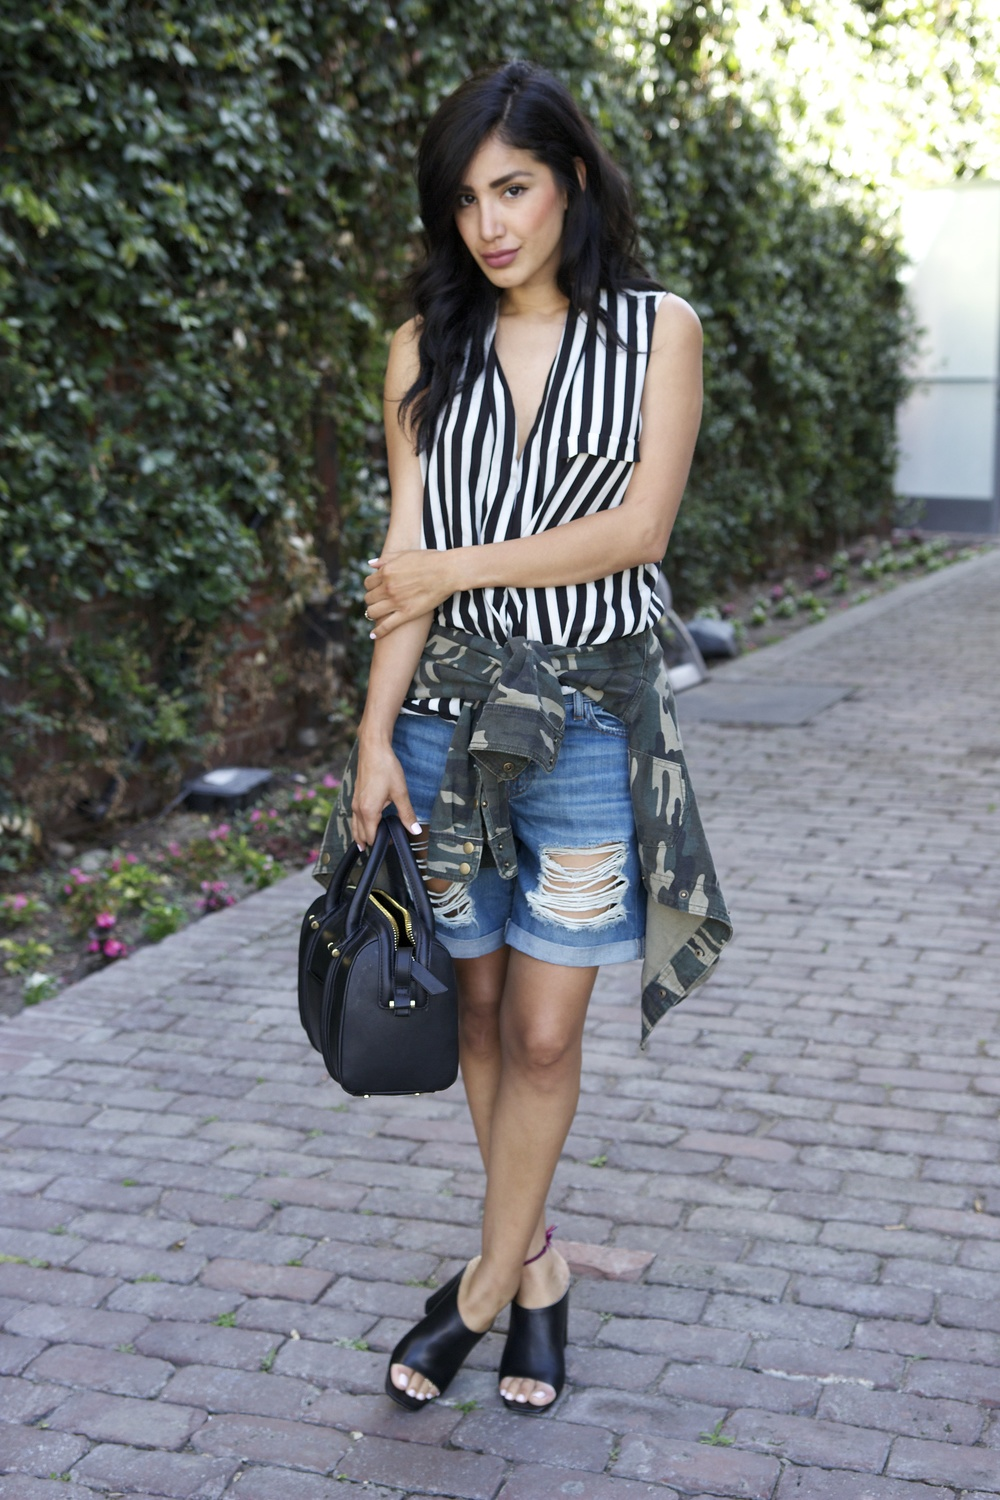 Zara top and mules, Forever21 Jacket, DL1961 shorts, H&M bag                                                                        Photos by Jovhany Morales